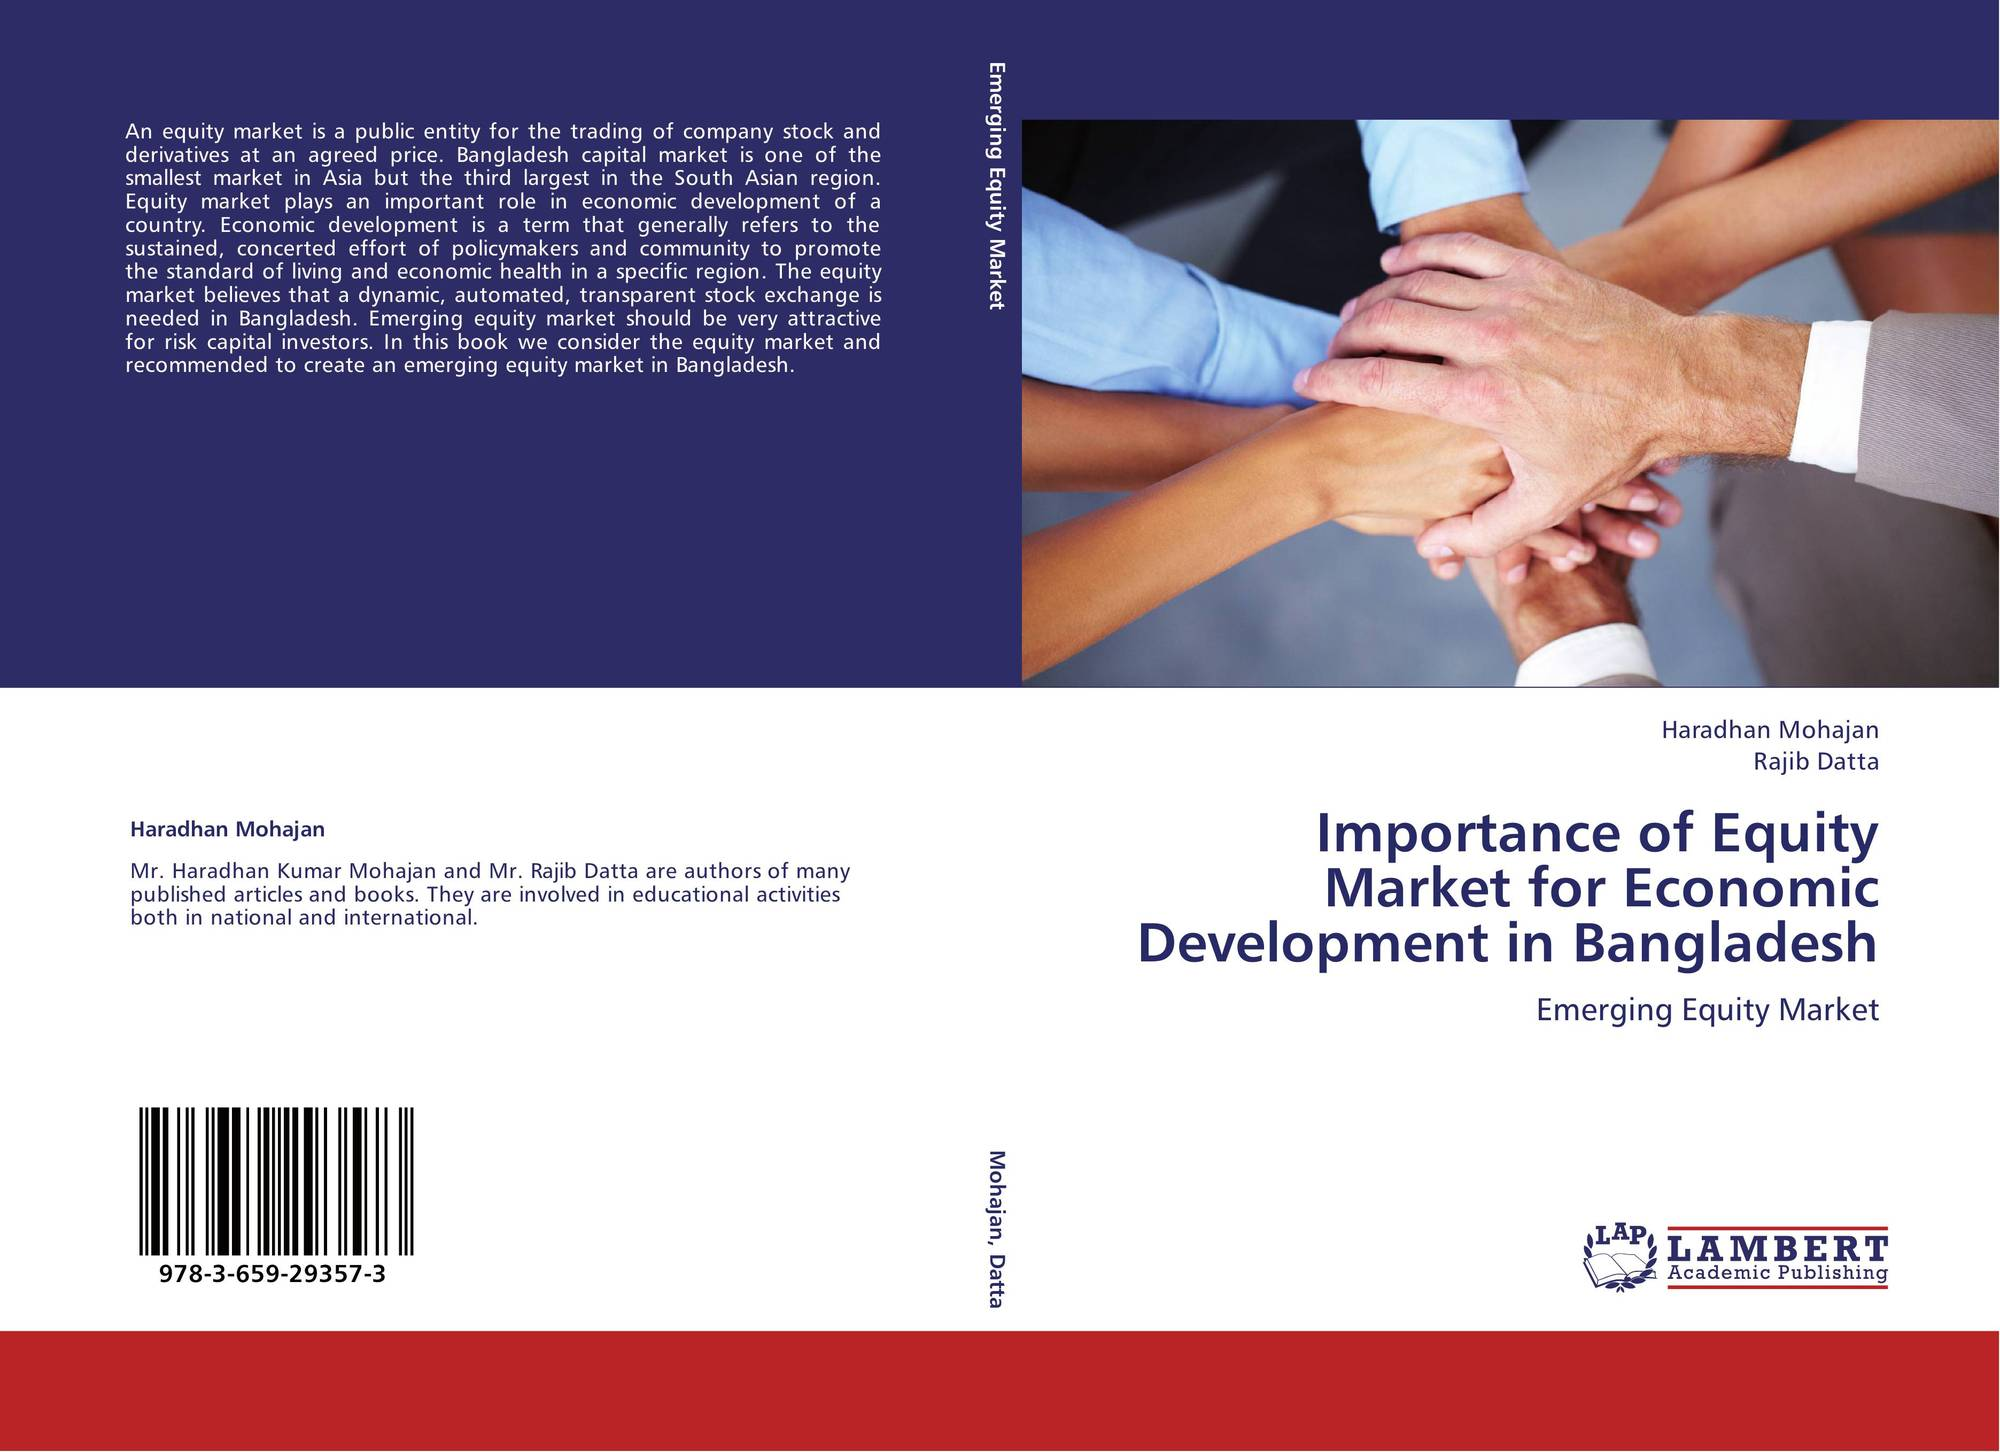 role of derivatives in emerging market essay Using firm-level data, we show that higher derivatives market participation by emerging market firms contributed to the observed decline in the exchange rate exposure of these firms from 1995 to 2005 our methodology follows a three-stage approach first, we measure and report exchange rate.